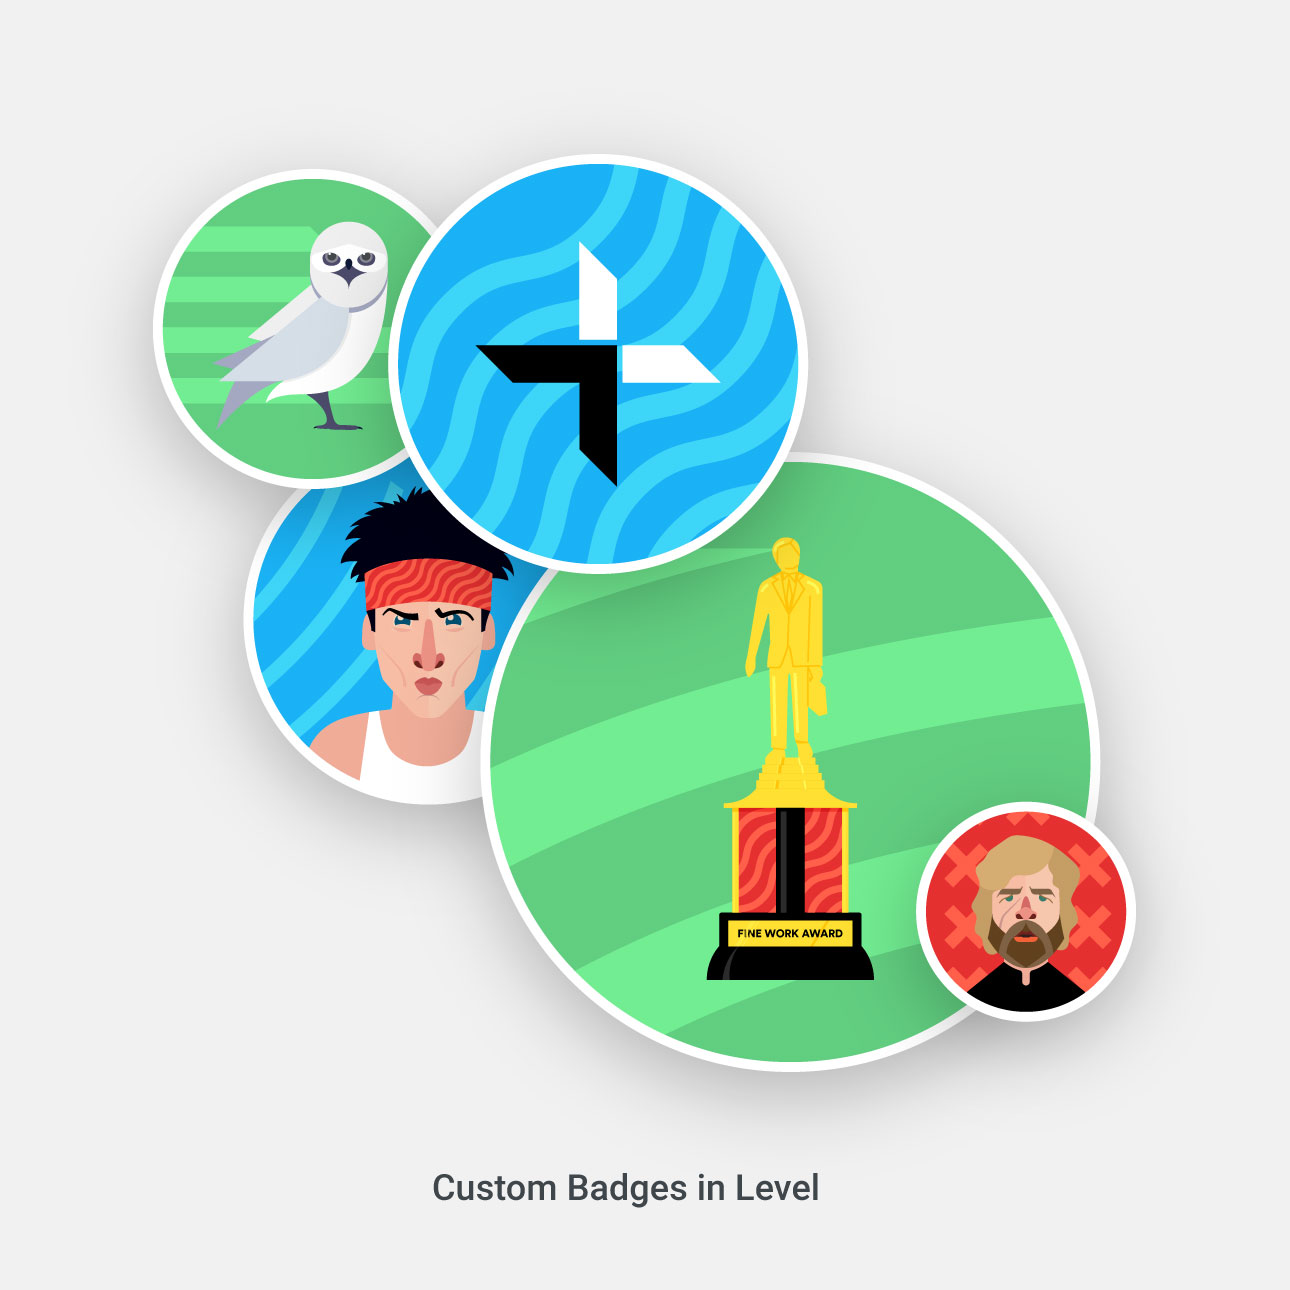 Custom Badges for Level